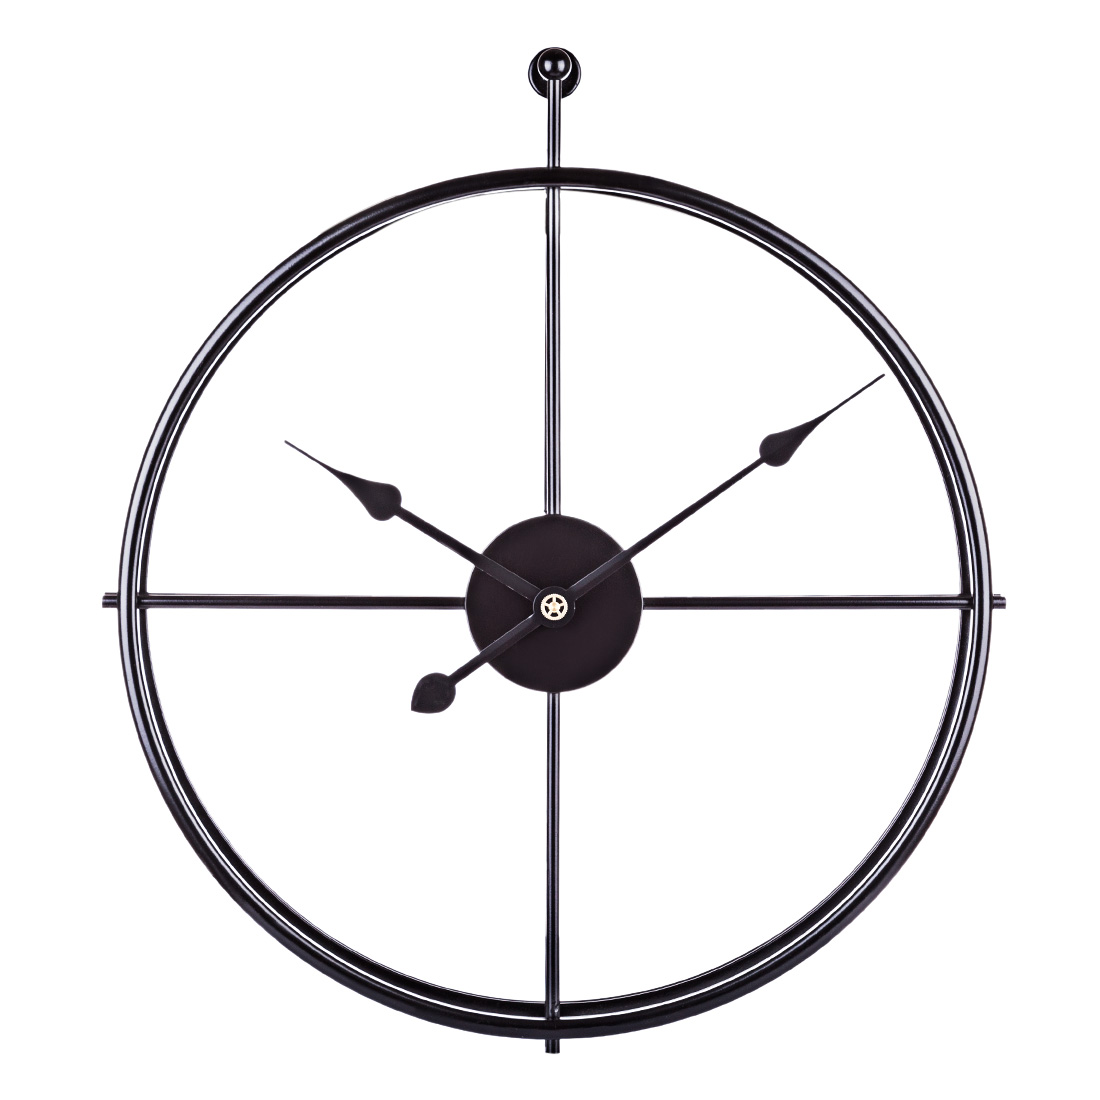 52cm Hot Popular Retro European Style Mute Iron Wall Clock Silent Hanging Clock For Home Office Decor - Black Frame And Pointer